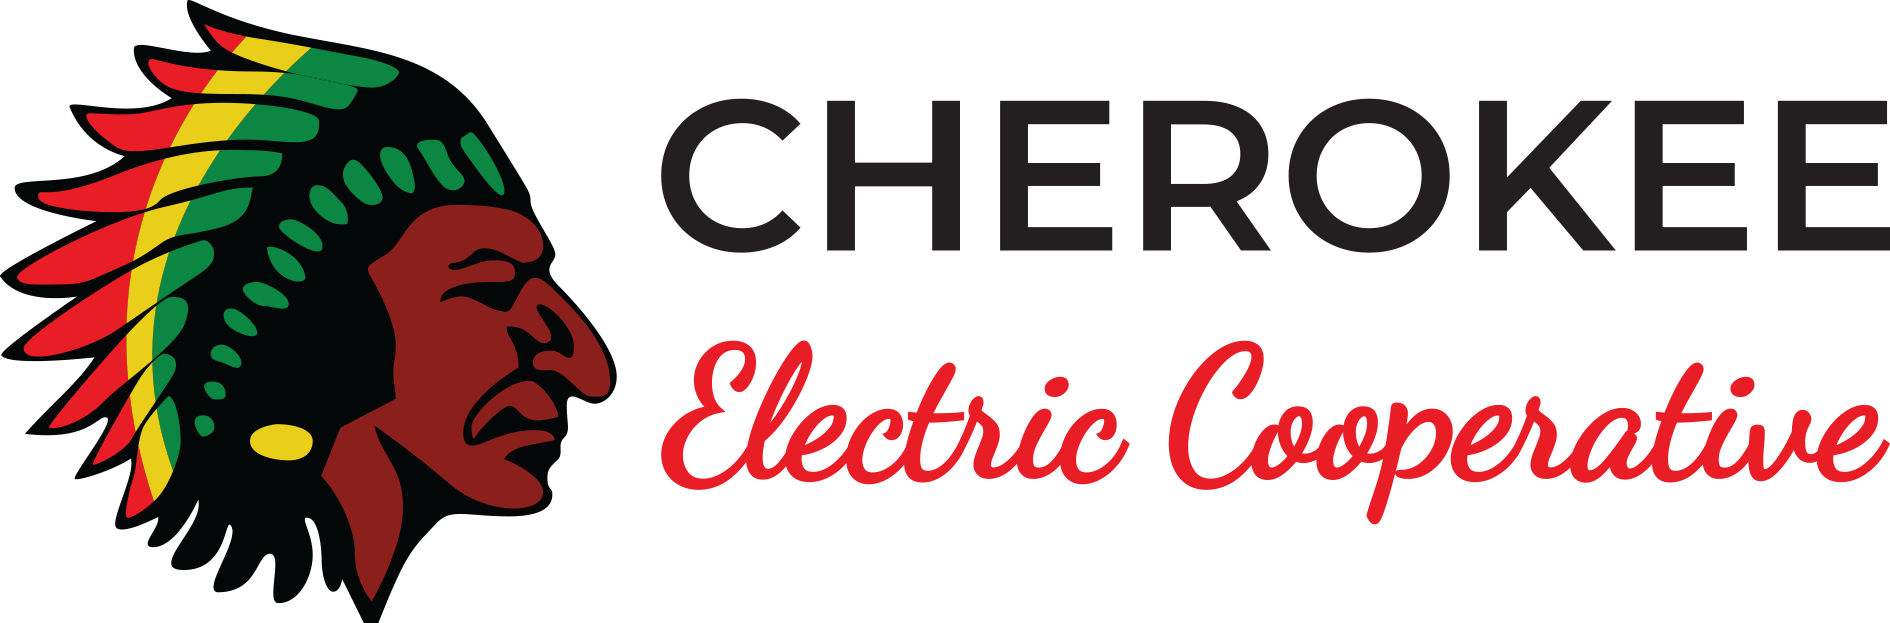 Cherokee Electric Cooperative Logo